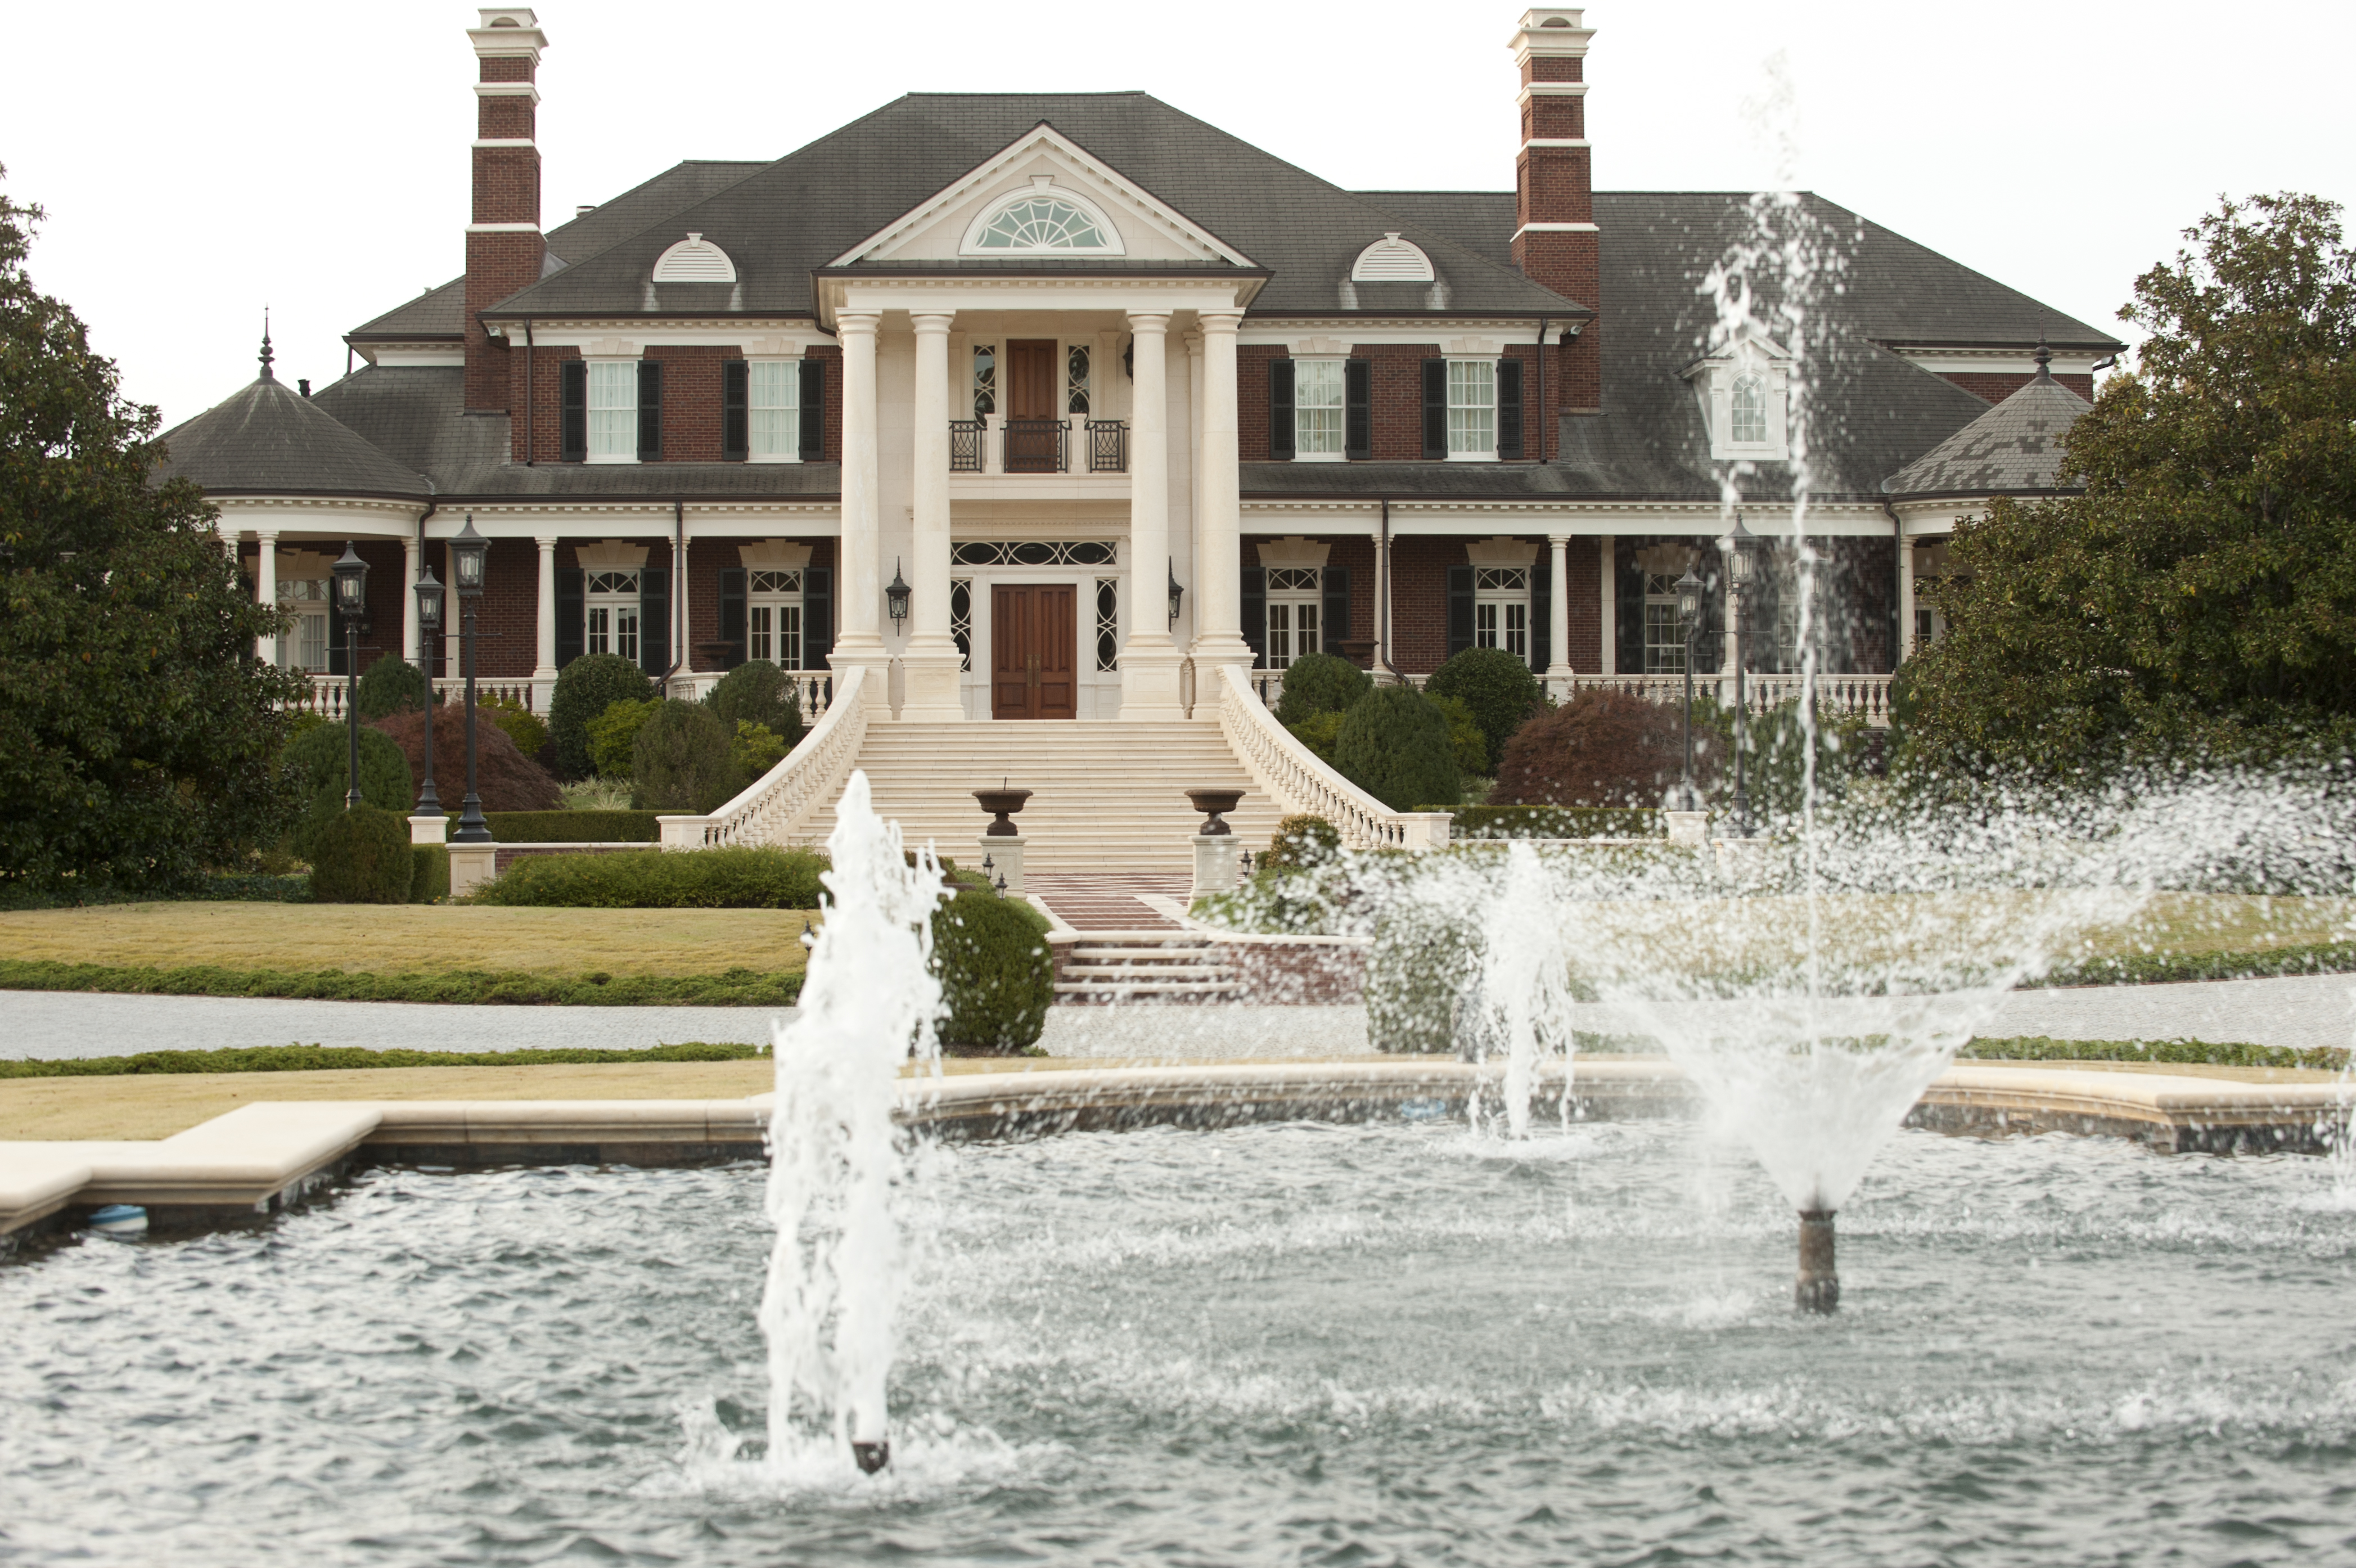 Atlanta Fine Homes Sotheby S International Realtythe Mansion Located About 45 Minutes From Reportedly Cost 40 Million To Build But Has Never Been